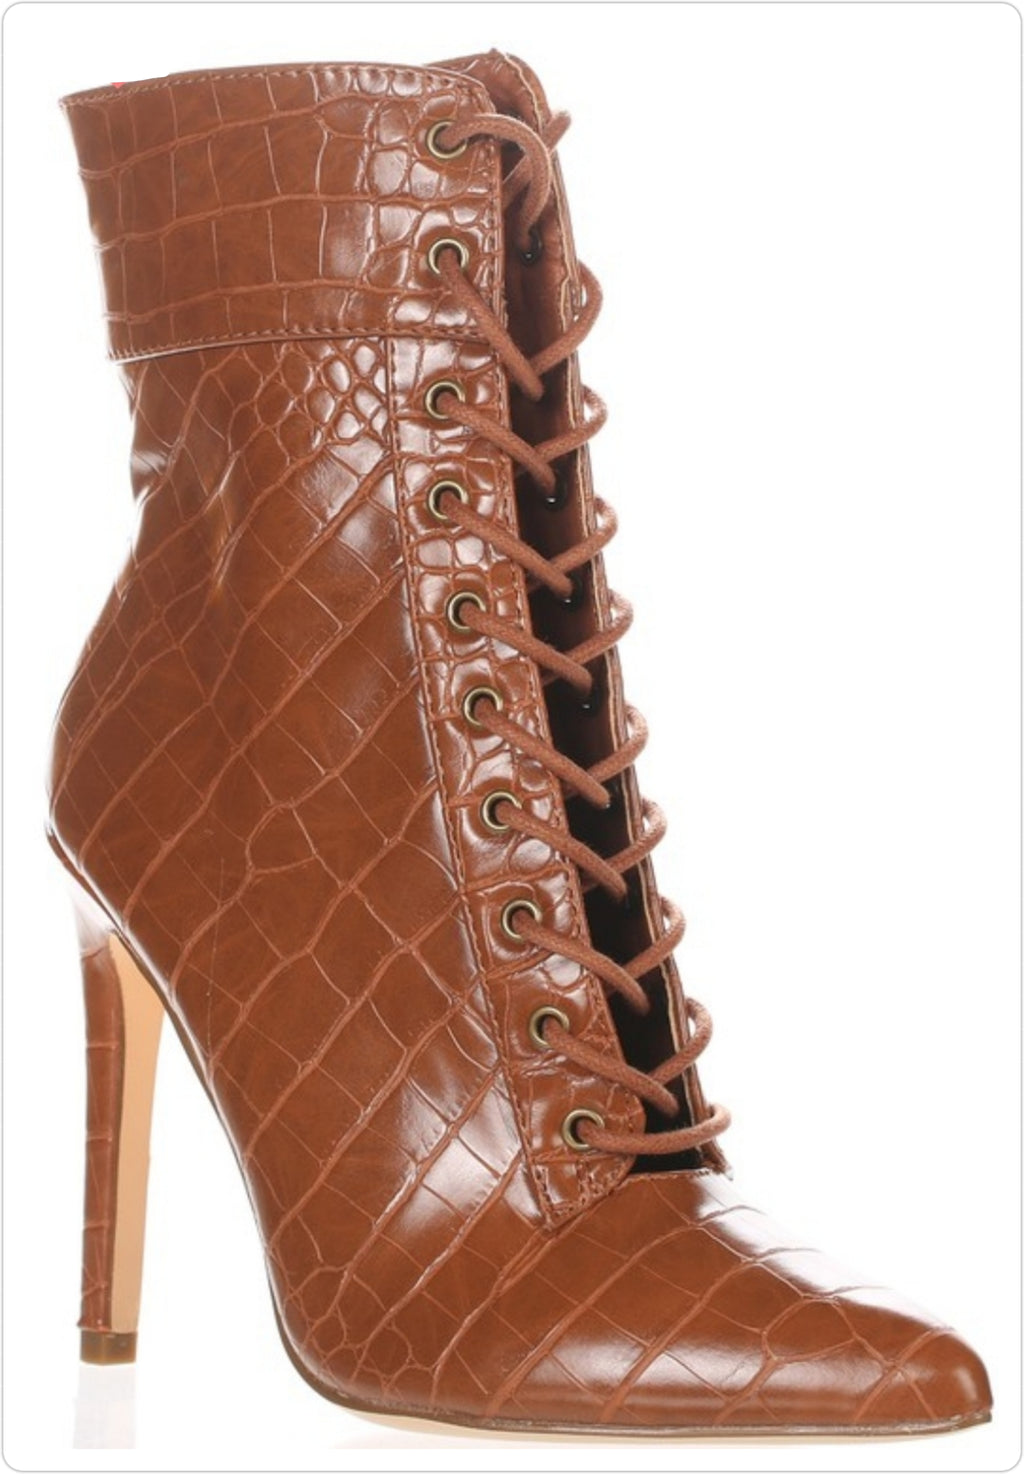 Croc Life Stiletto Boot